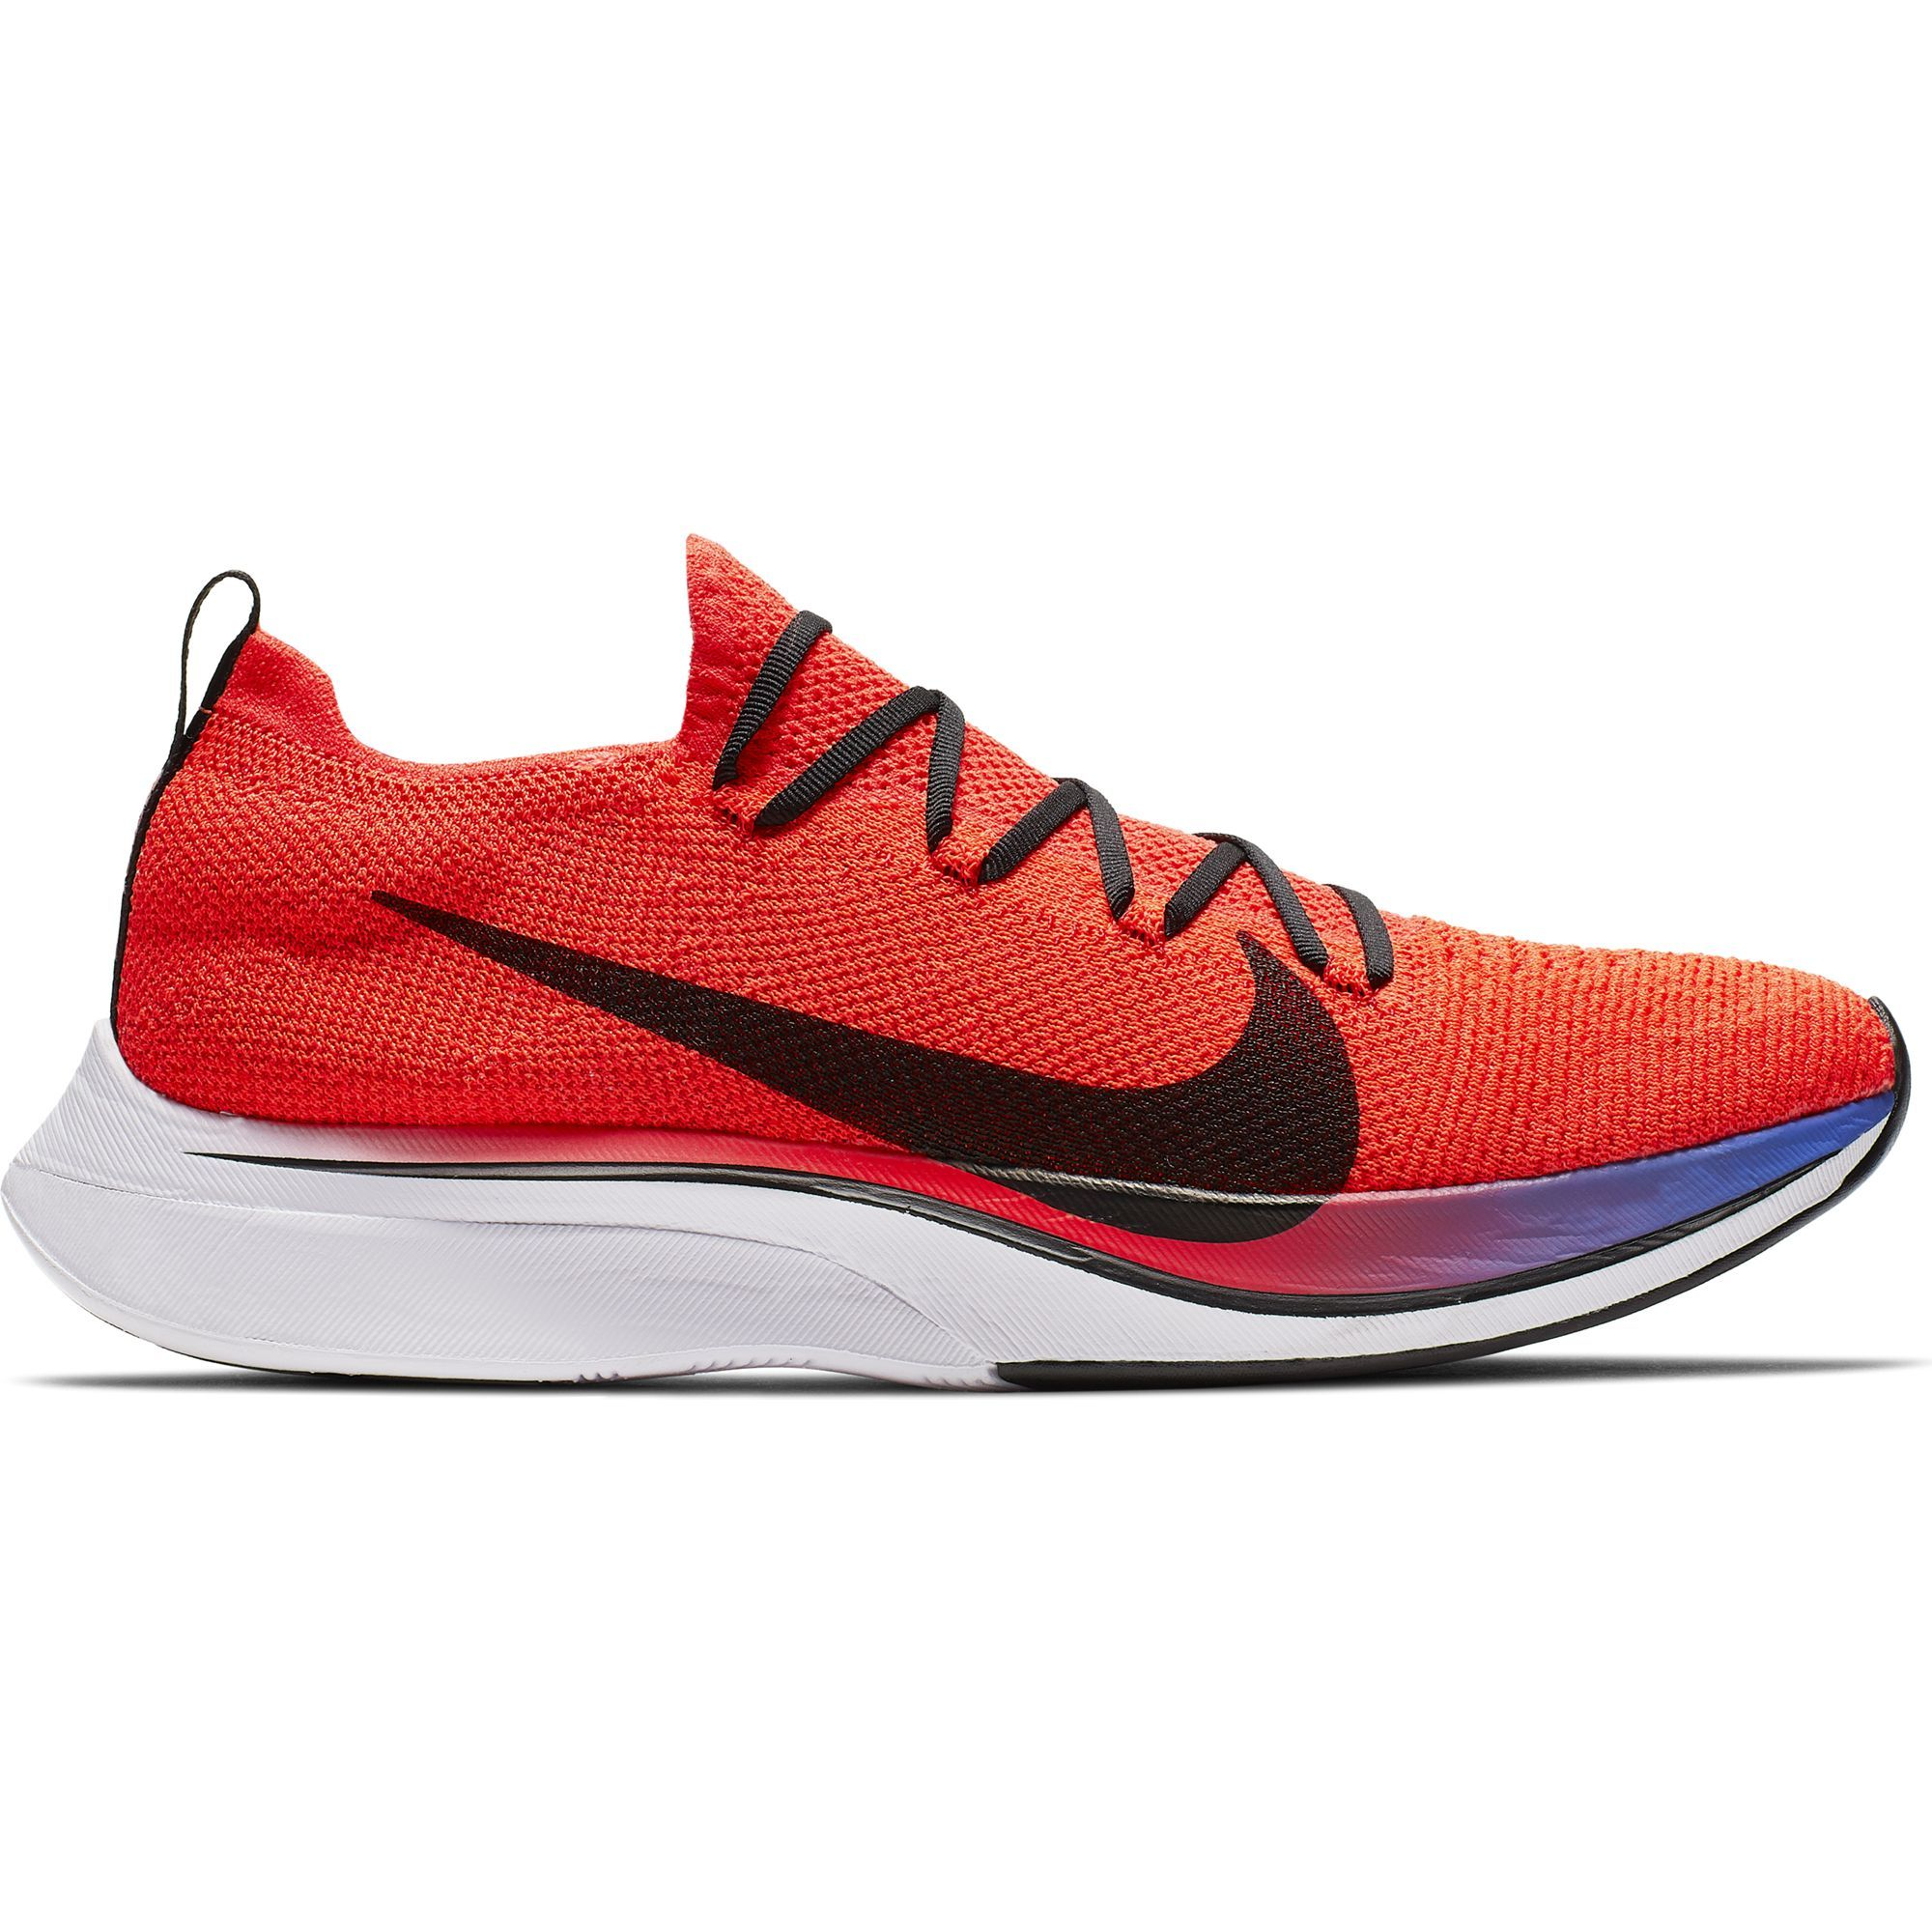 Nike Vaporfly 4% Flyknit (Orange)